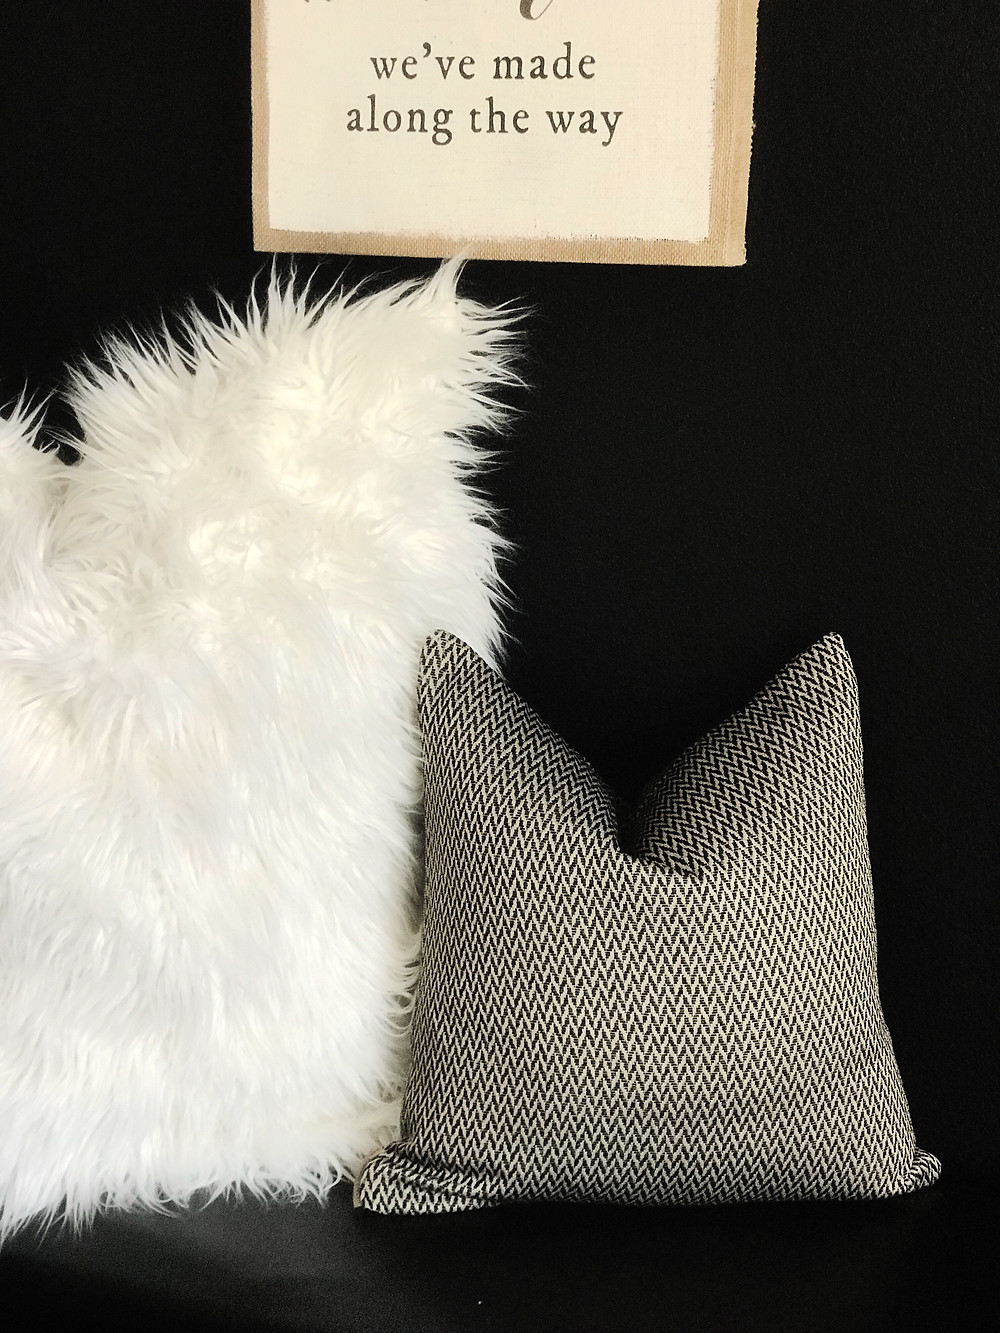 New to the shop! Check out our new black herringbone designer pillow. Beautifully made with a woven geometric print.